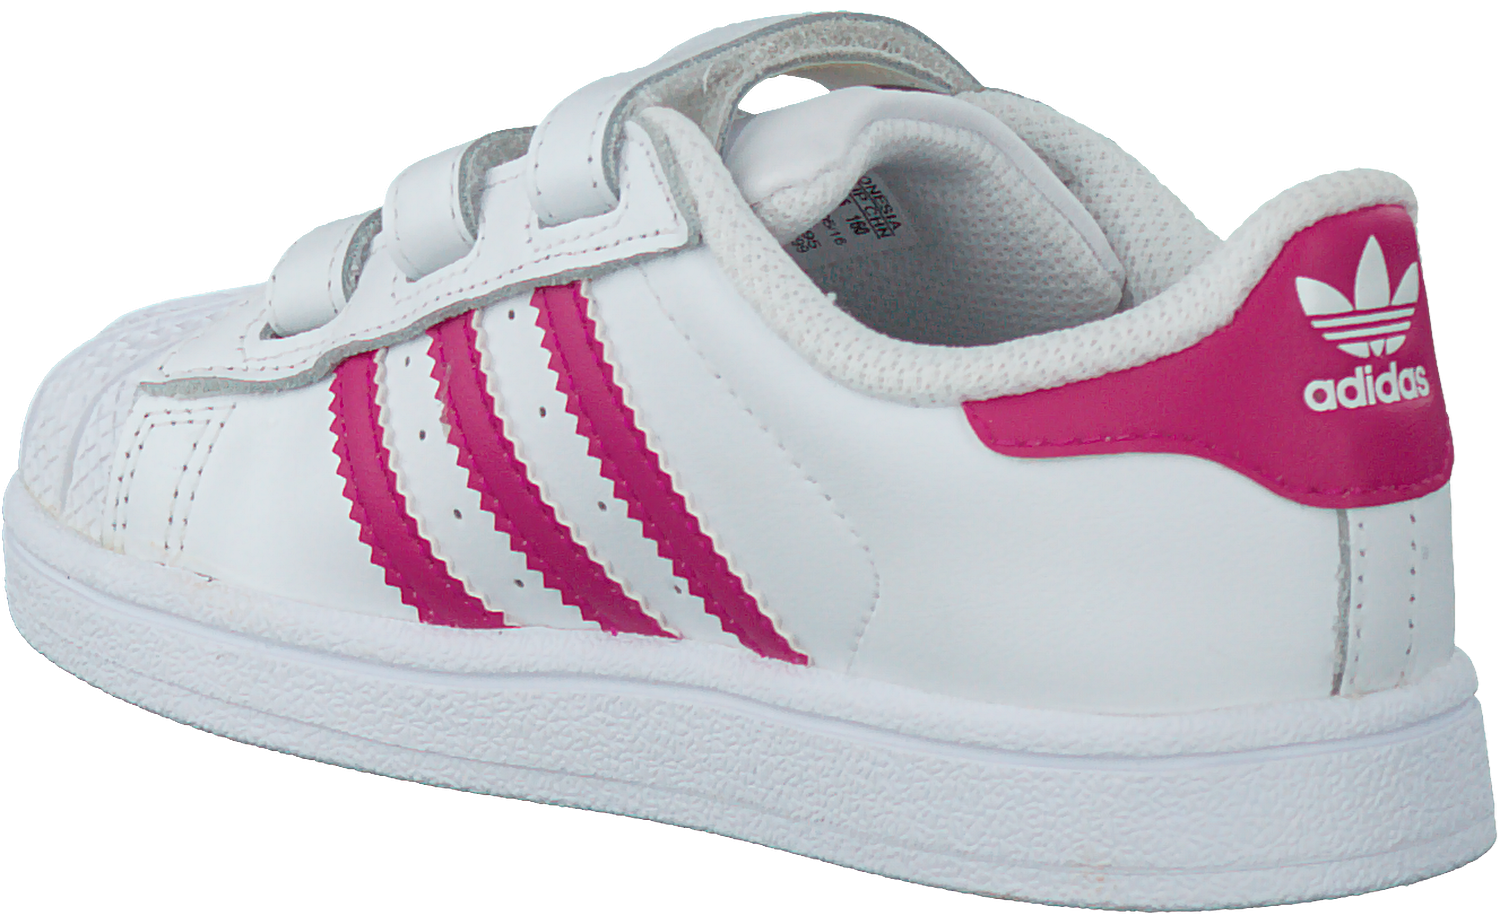 599065f4cec Witte ADIDAS Sneakers SUPERSTAR CF. ADIDAS. -30%. Previous